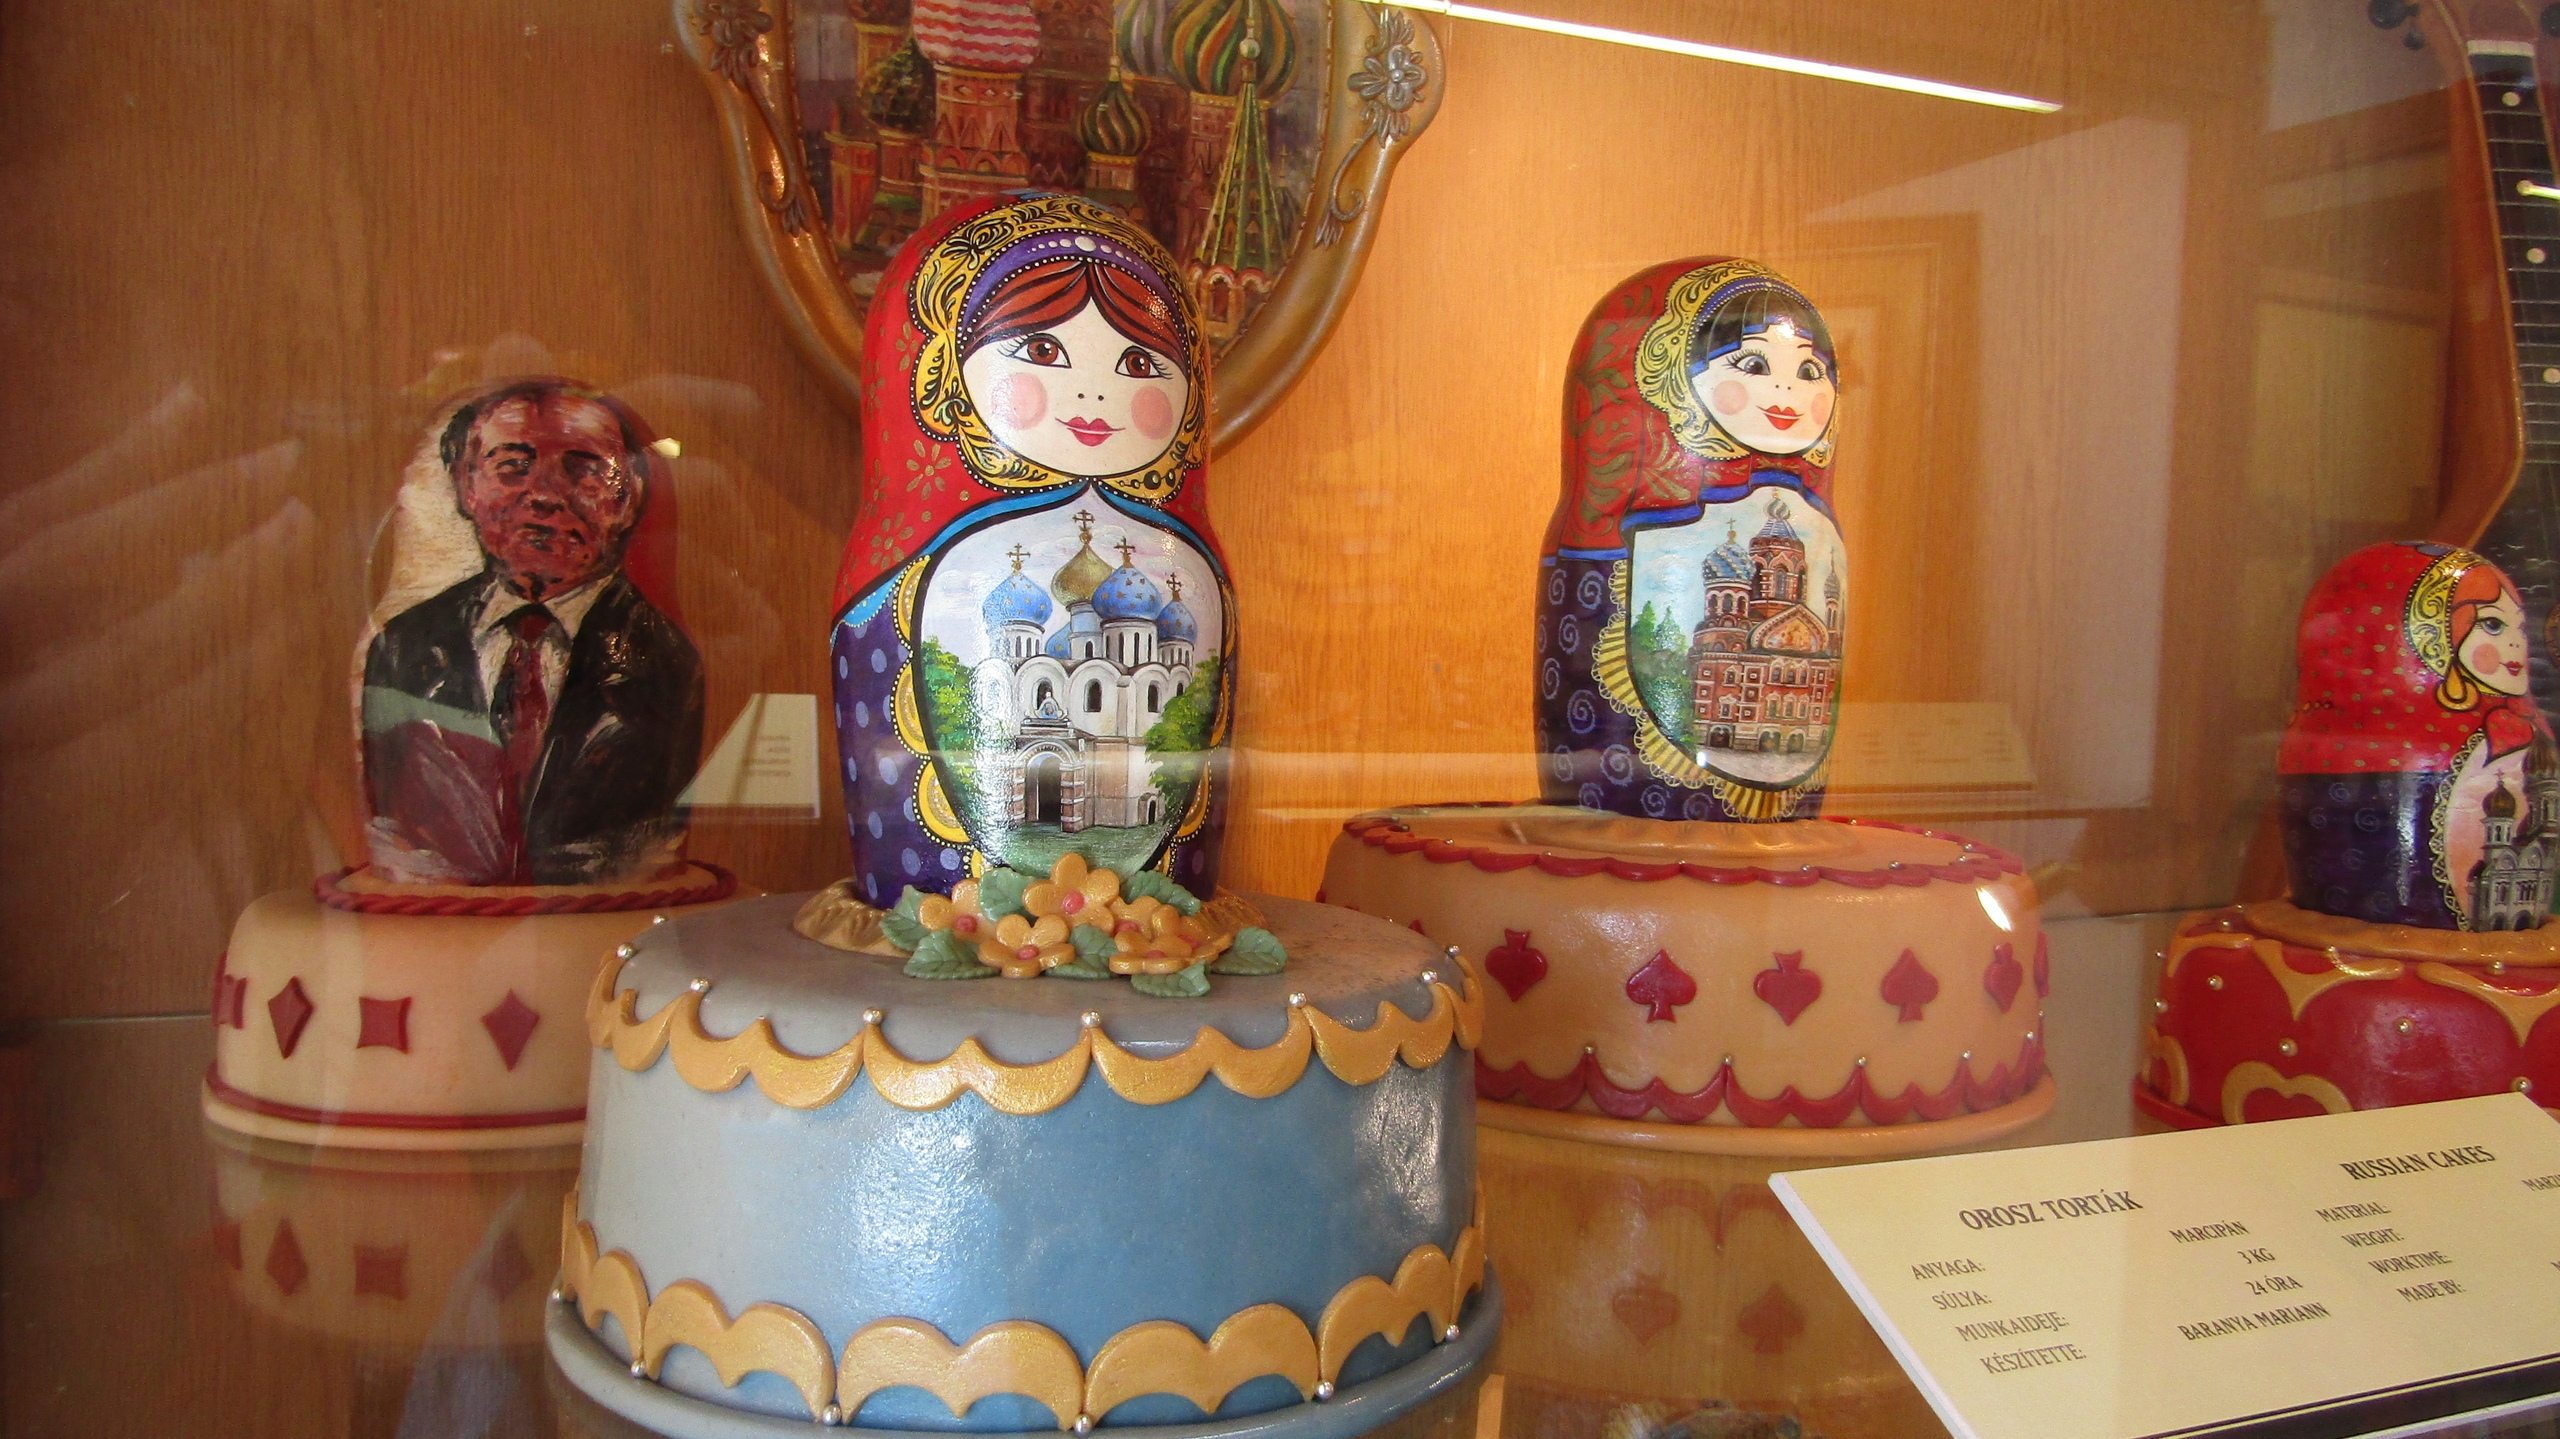 Marzipan Museum in Szentendre: sweet in sweet under sweet marzipan, can, method, work, museum, marzipan, making, Cold, sugar, syrup, hours, liked, Marton, someone, almond, several, mixture, museum, month, muck